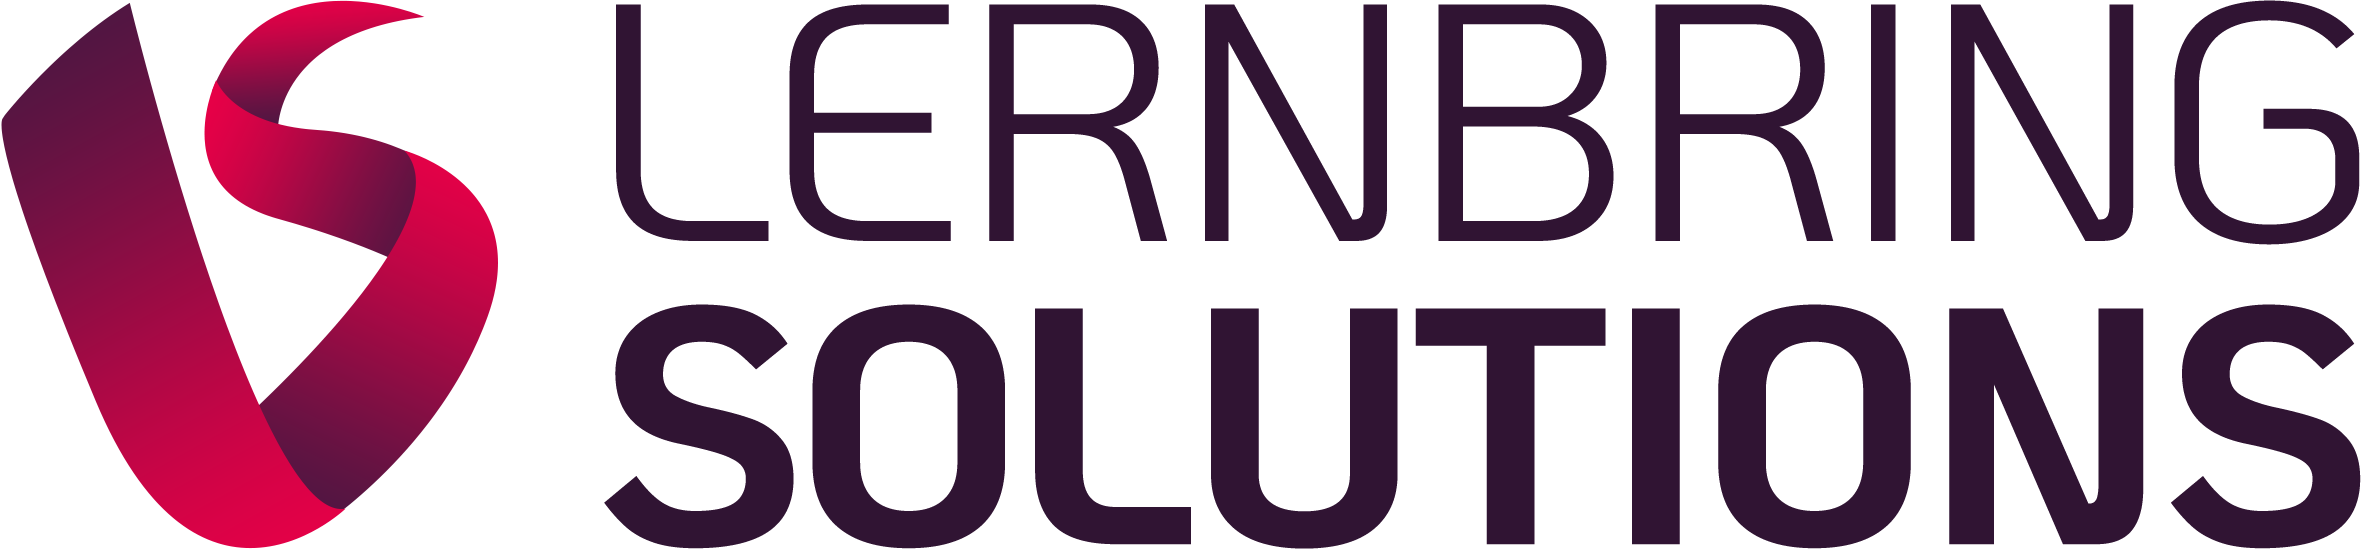 Lernbring Solutions